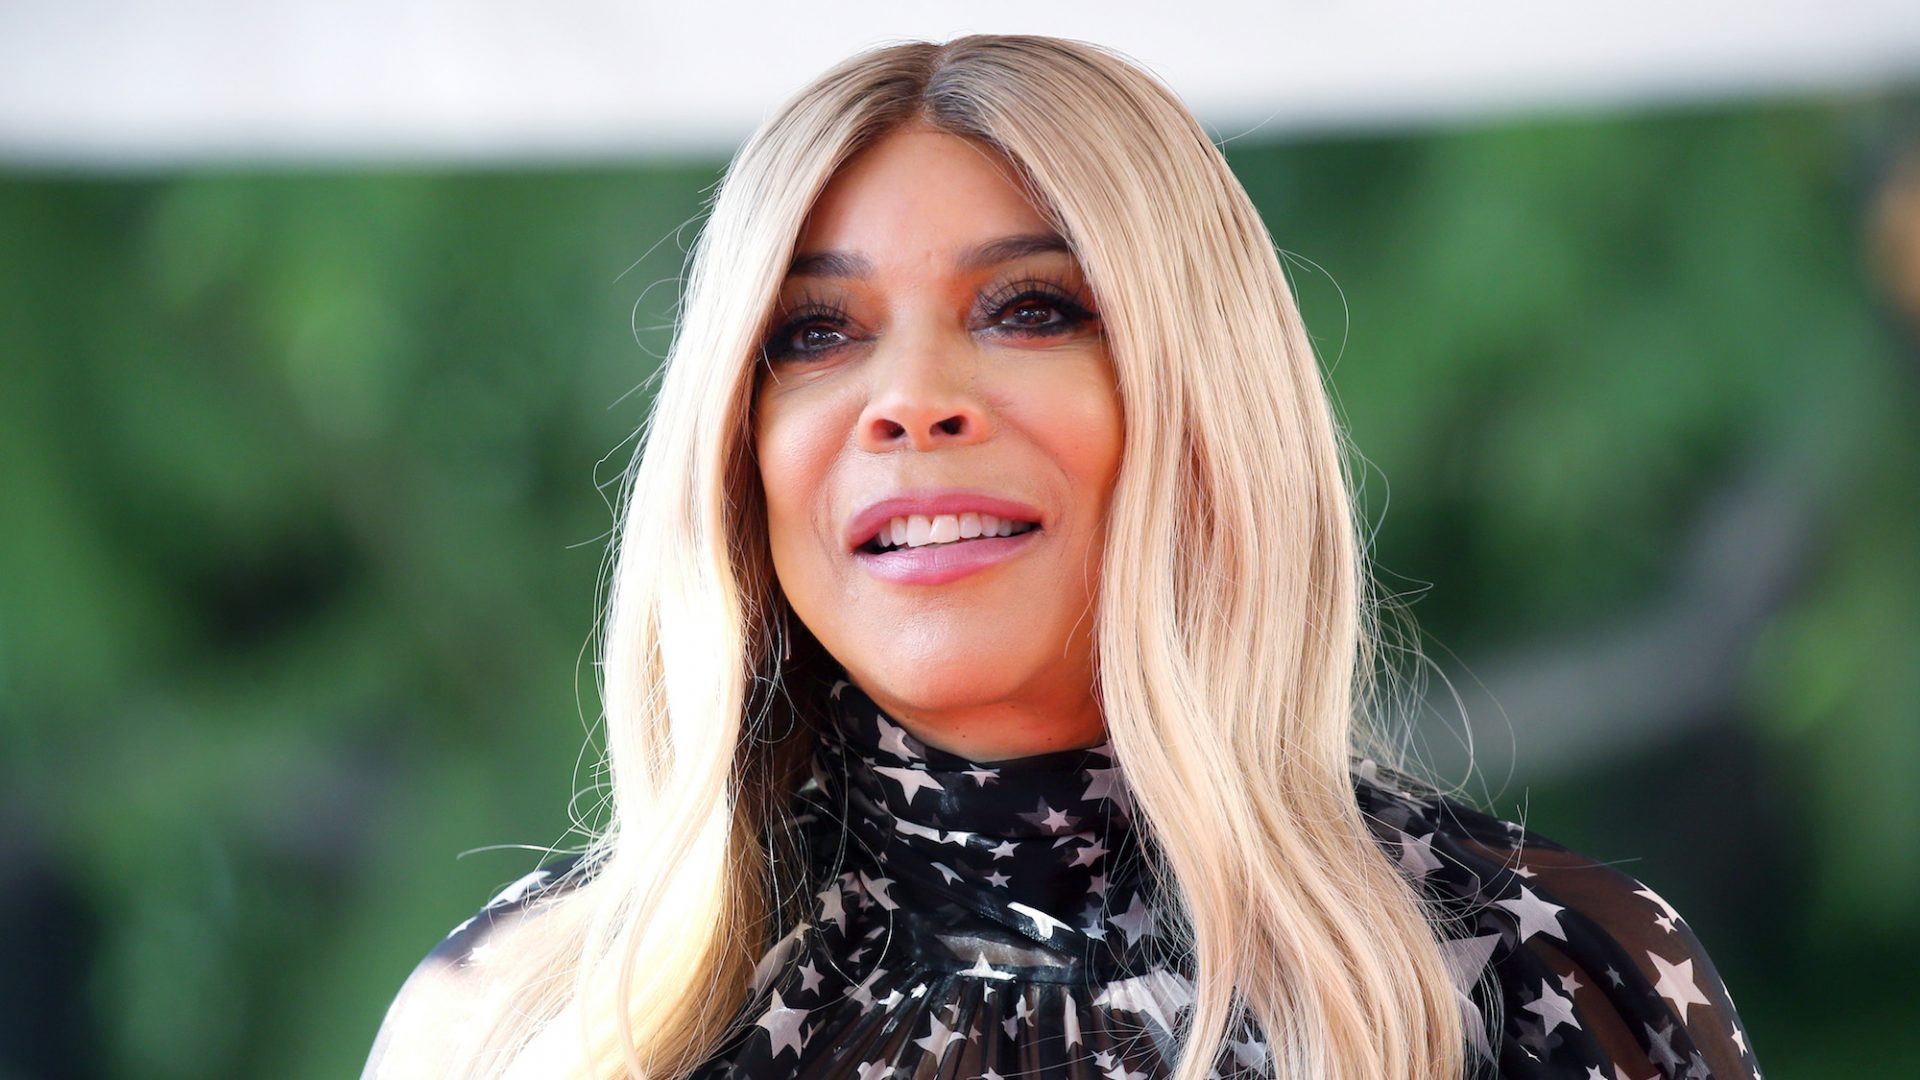 Wendy Williams cuddles up with new man on Instagram